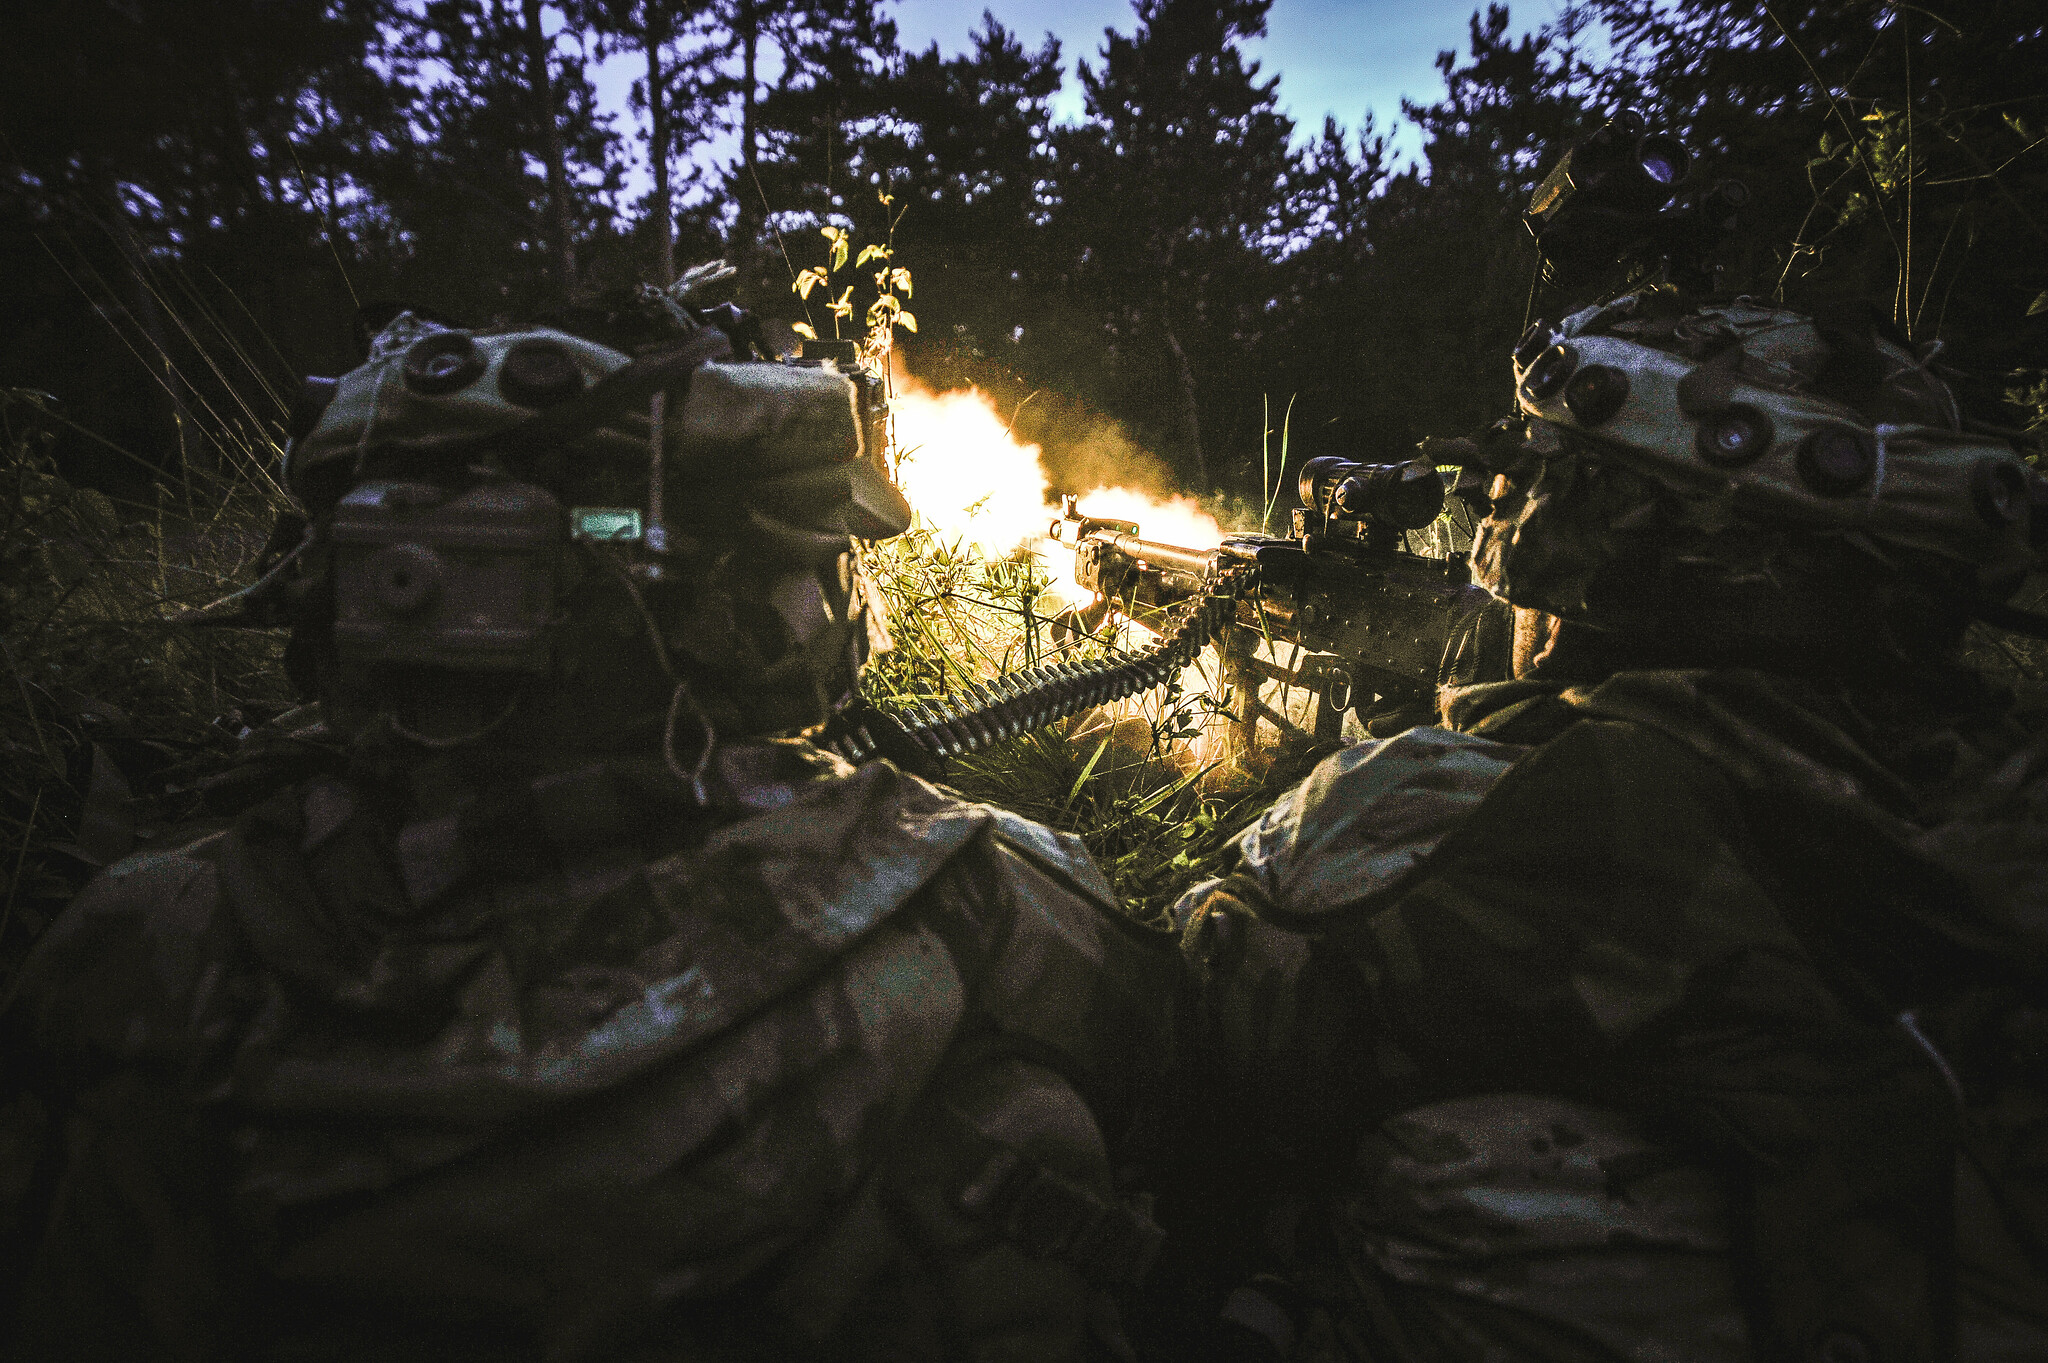 Army paratroopers react to contact while participating in Exercise Immediate Response at Pocek Training Area, Slovenia, May 15, 2019. (Army)